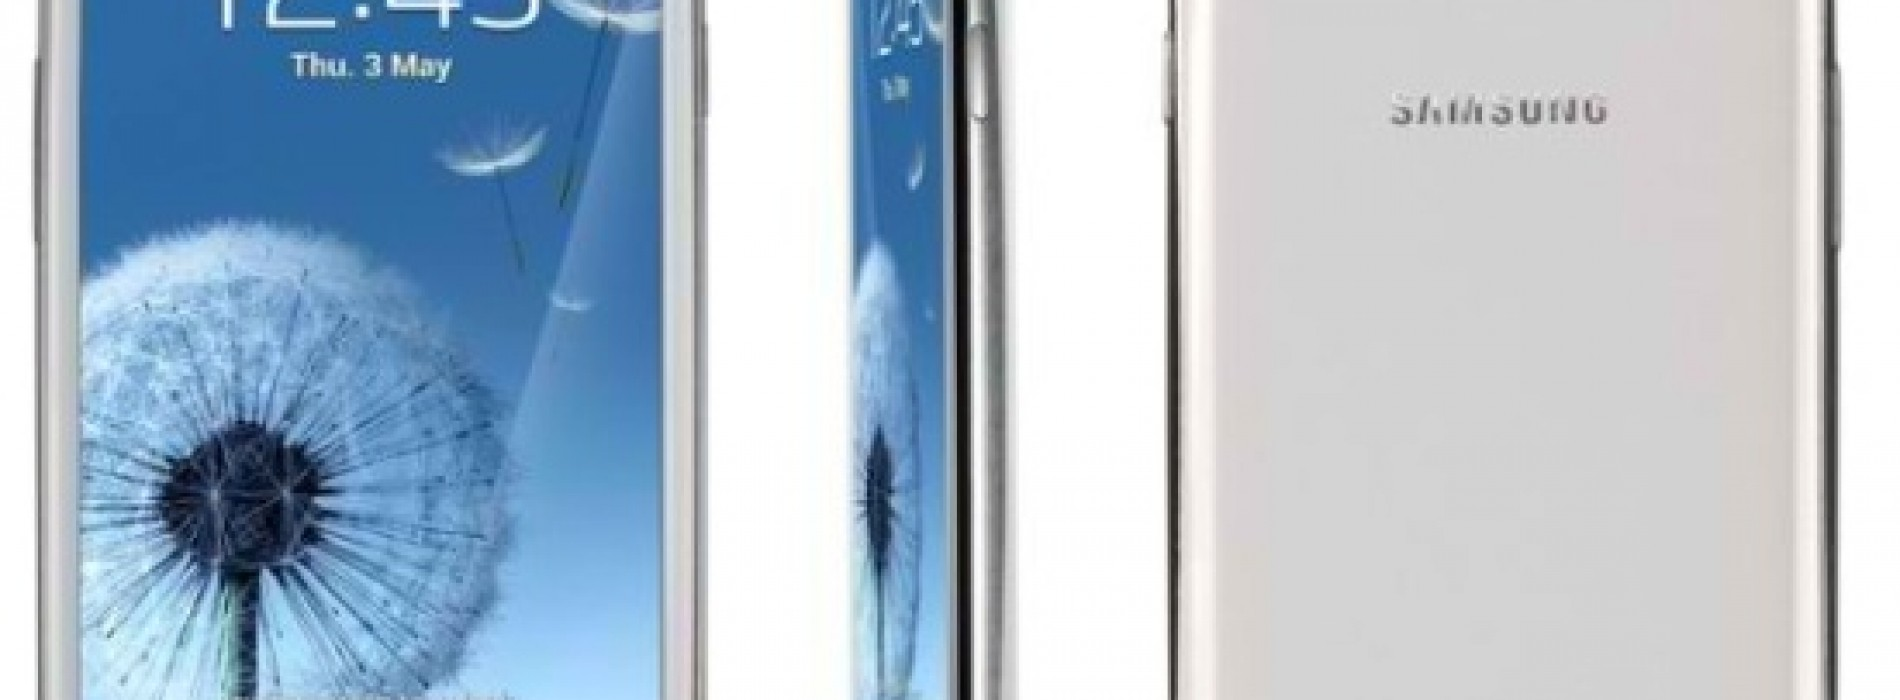 32GB Samsung Galaxy S III phones on Sprint shipping now